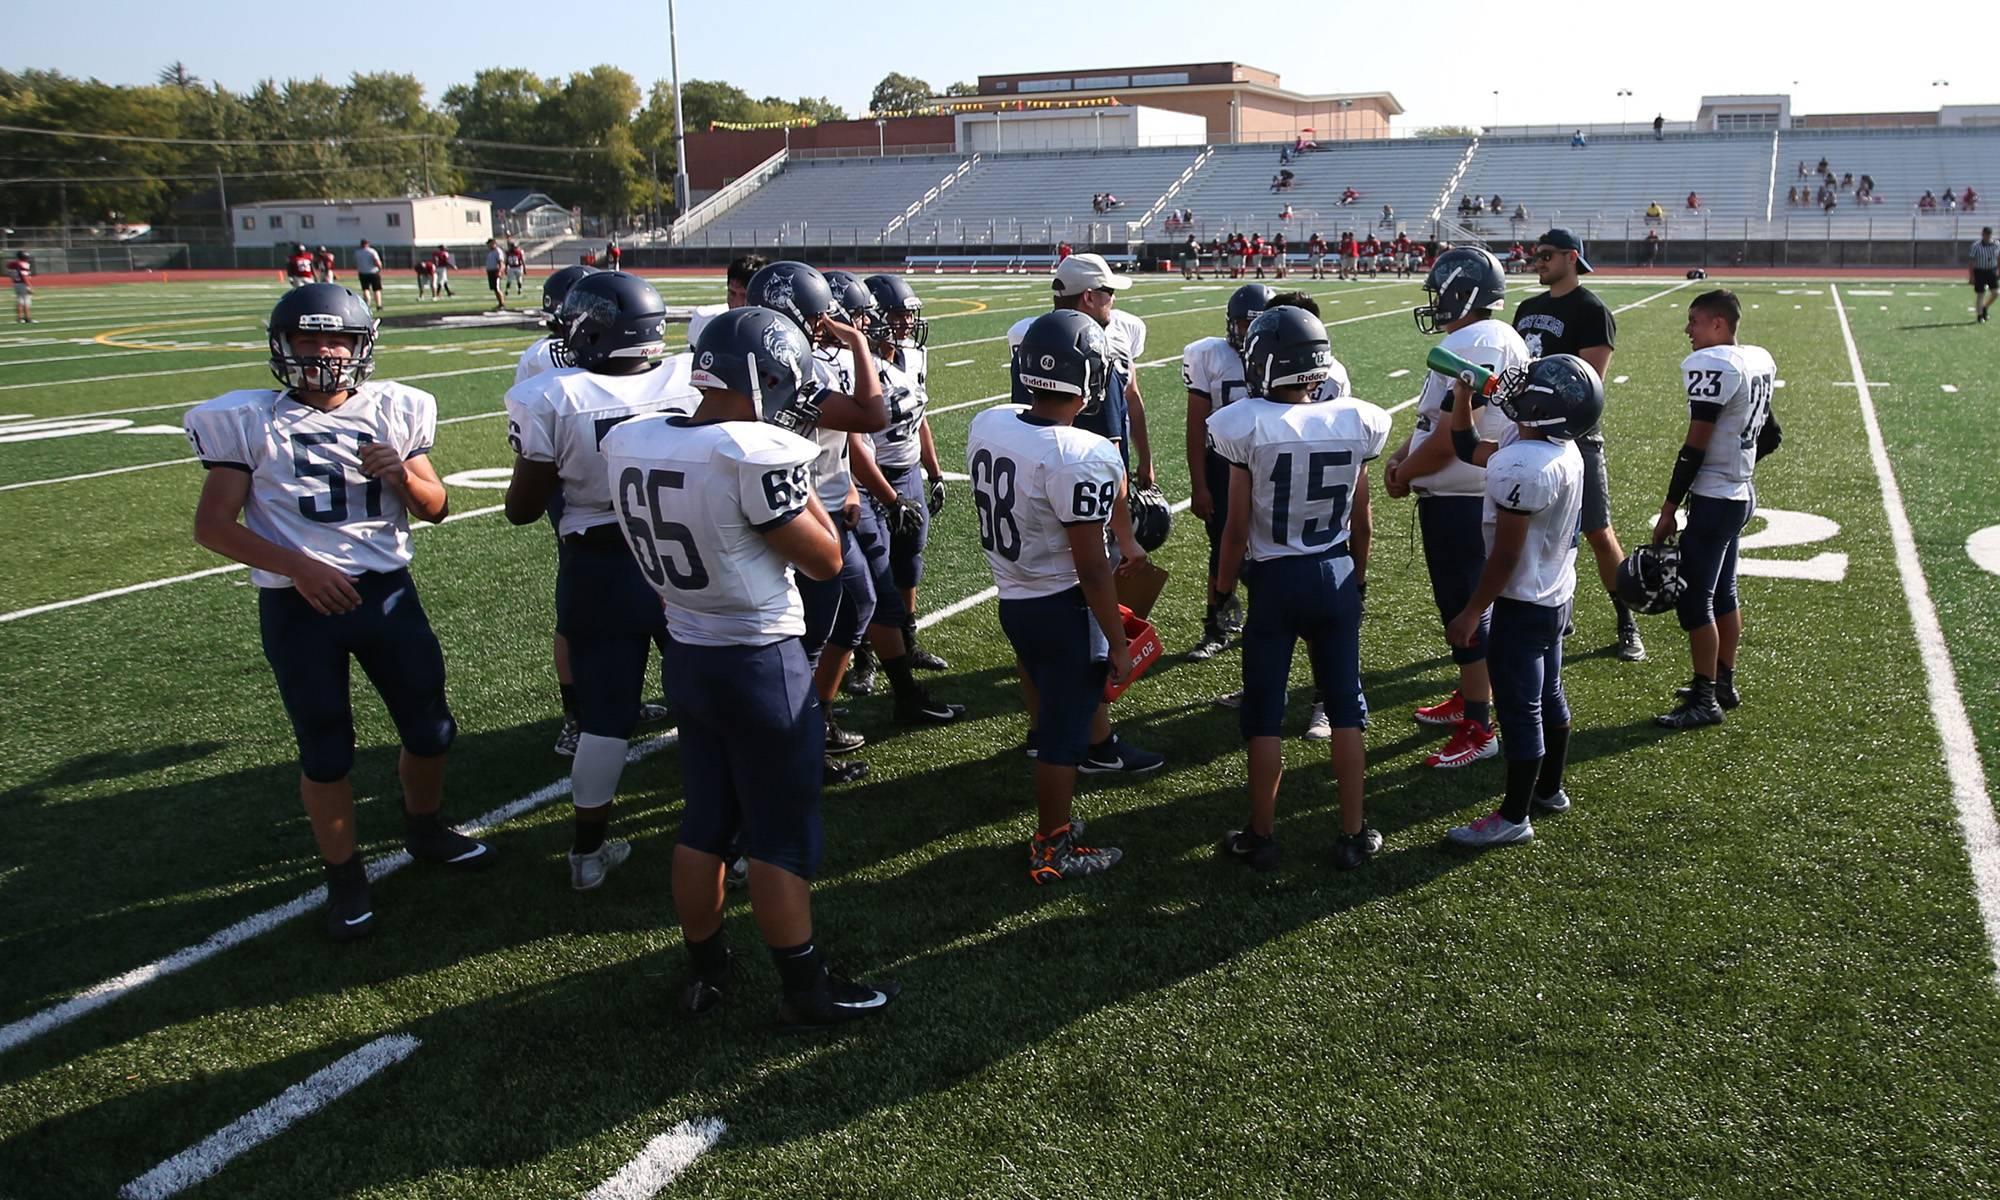 West Chicago's freshman football team gathers on the field for a game against East Aurora last month.